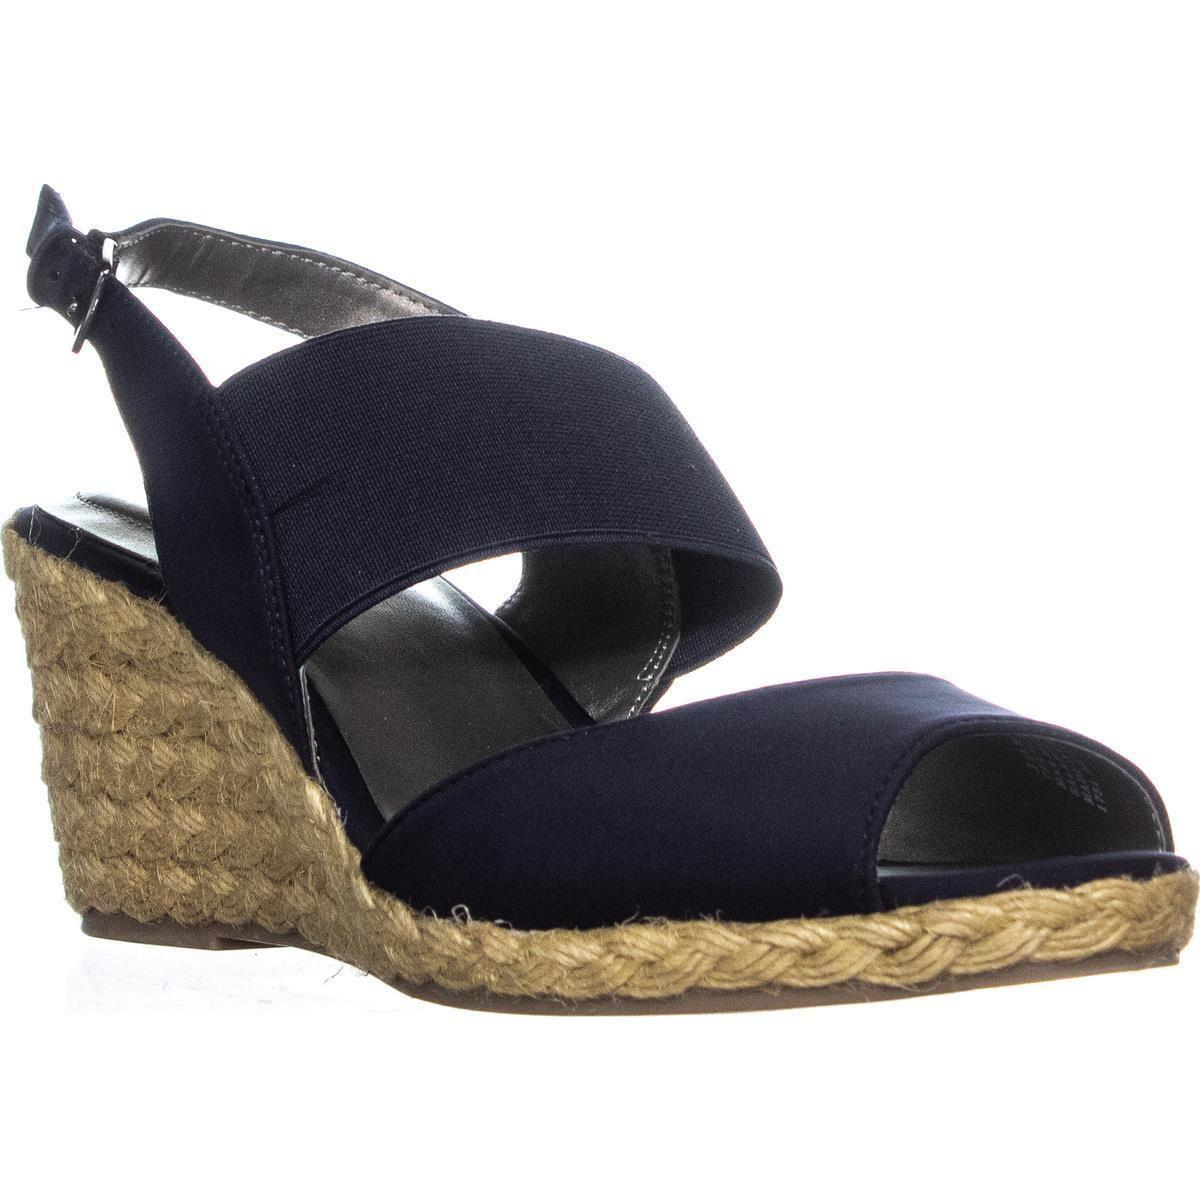 6e8bfd6d536 Lyst - Bandolino Himeka Espadrilles Wedge Sandals, Navy/navy in Blue